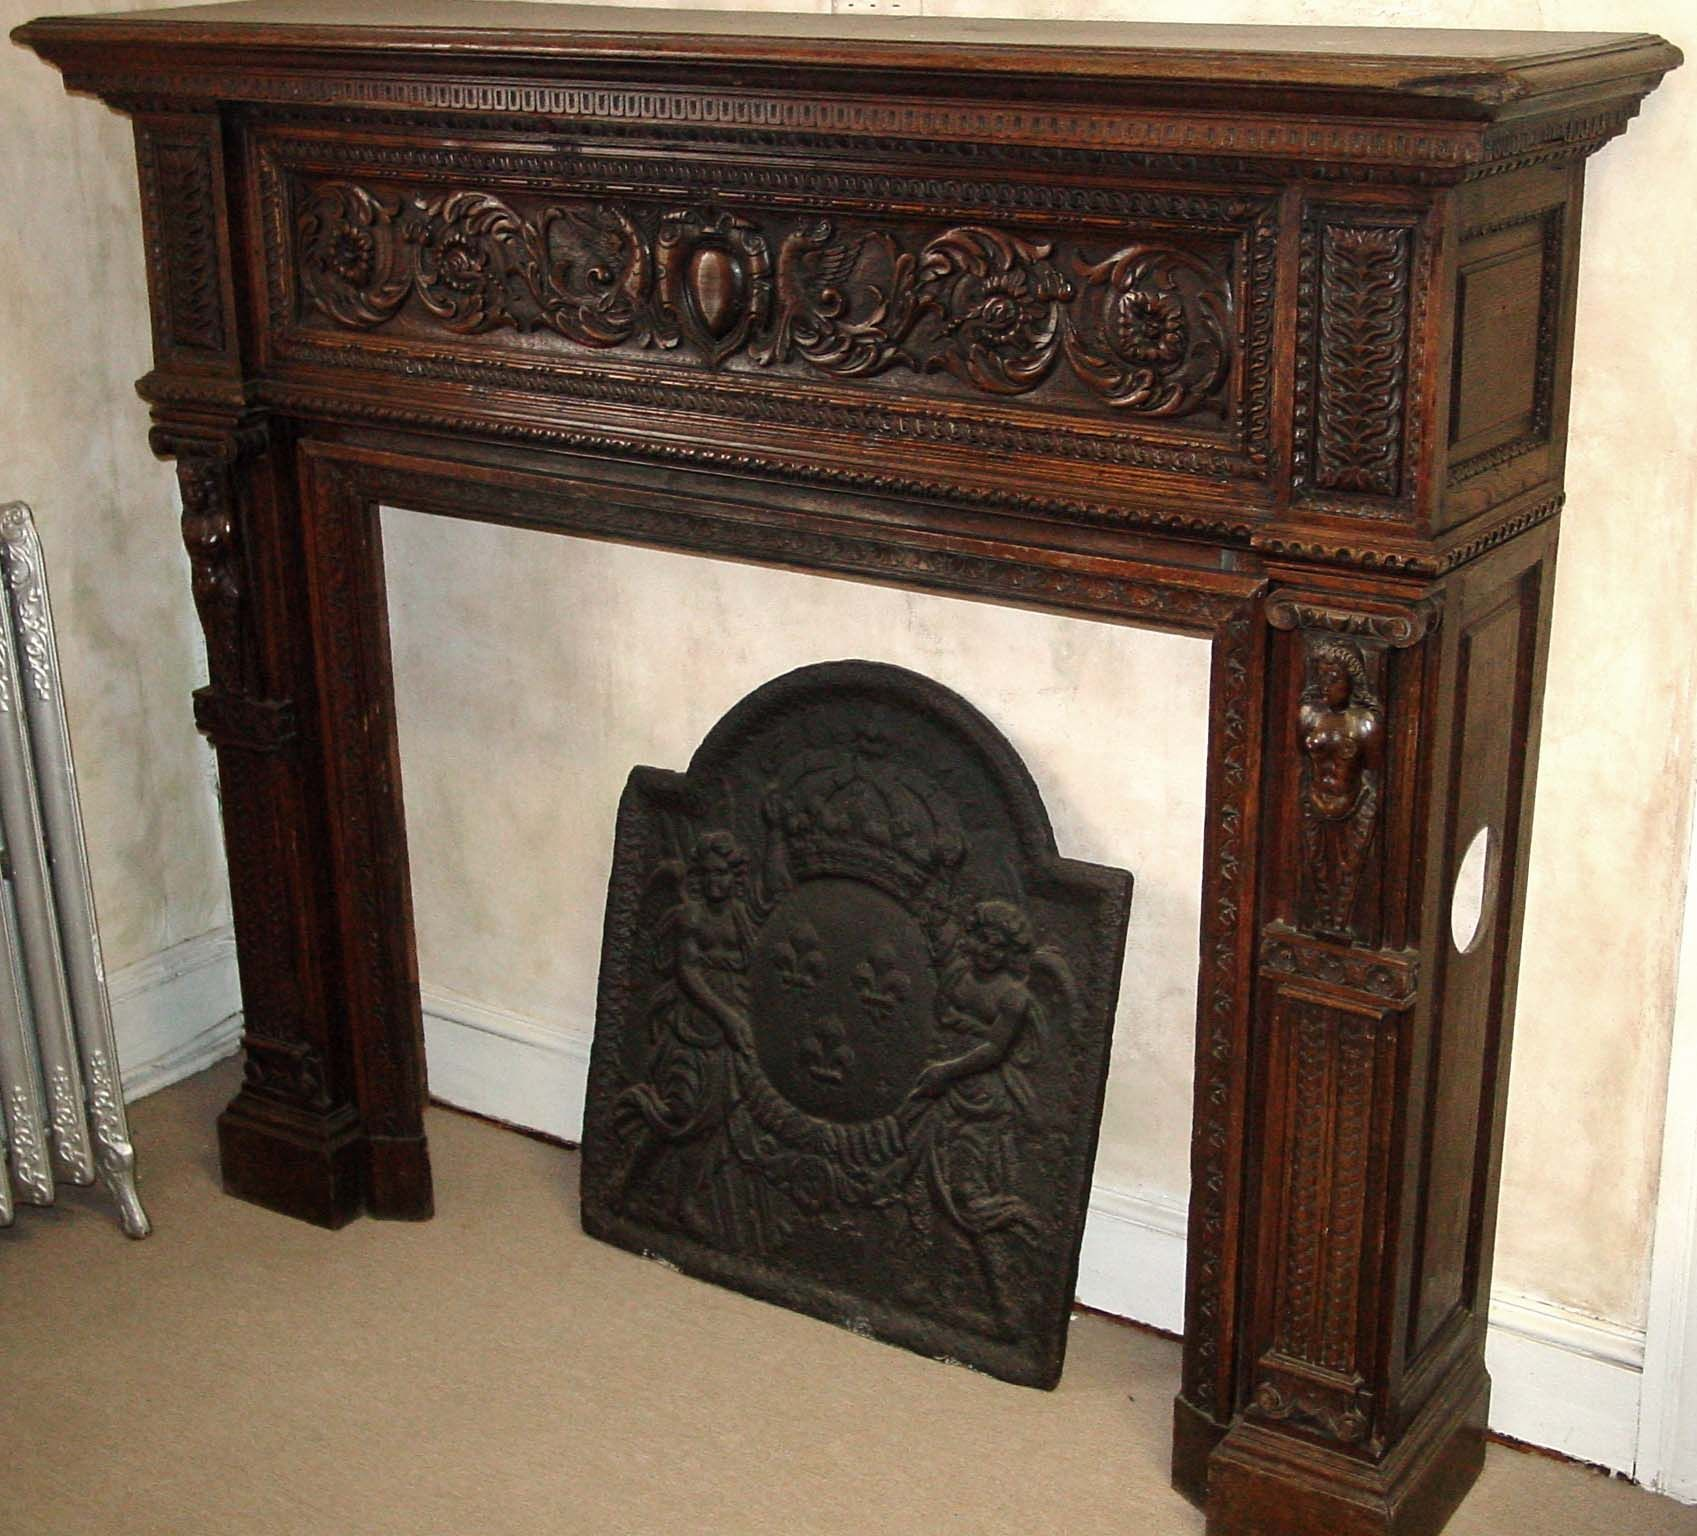 Antique fireplace mantels french hand carved wood for Wood fireplace surround designs